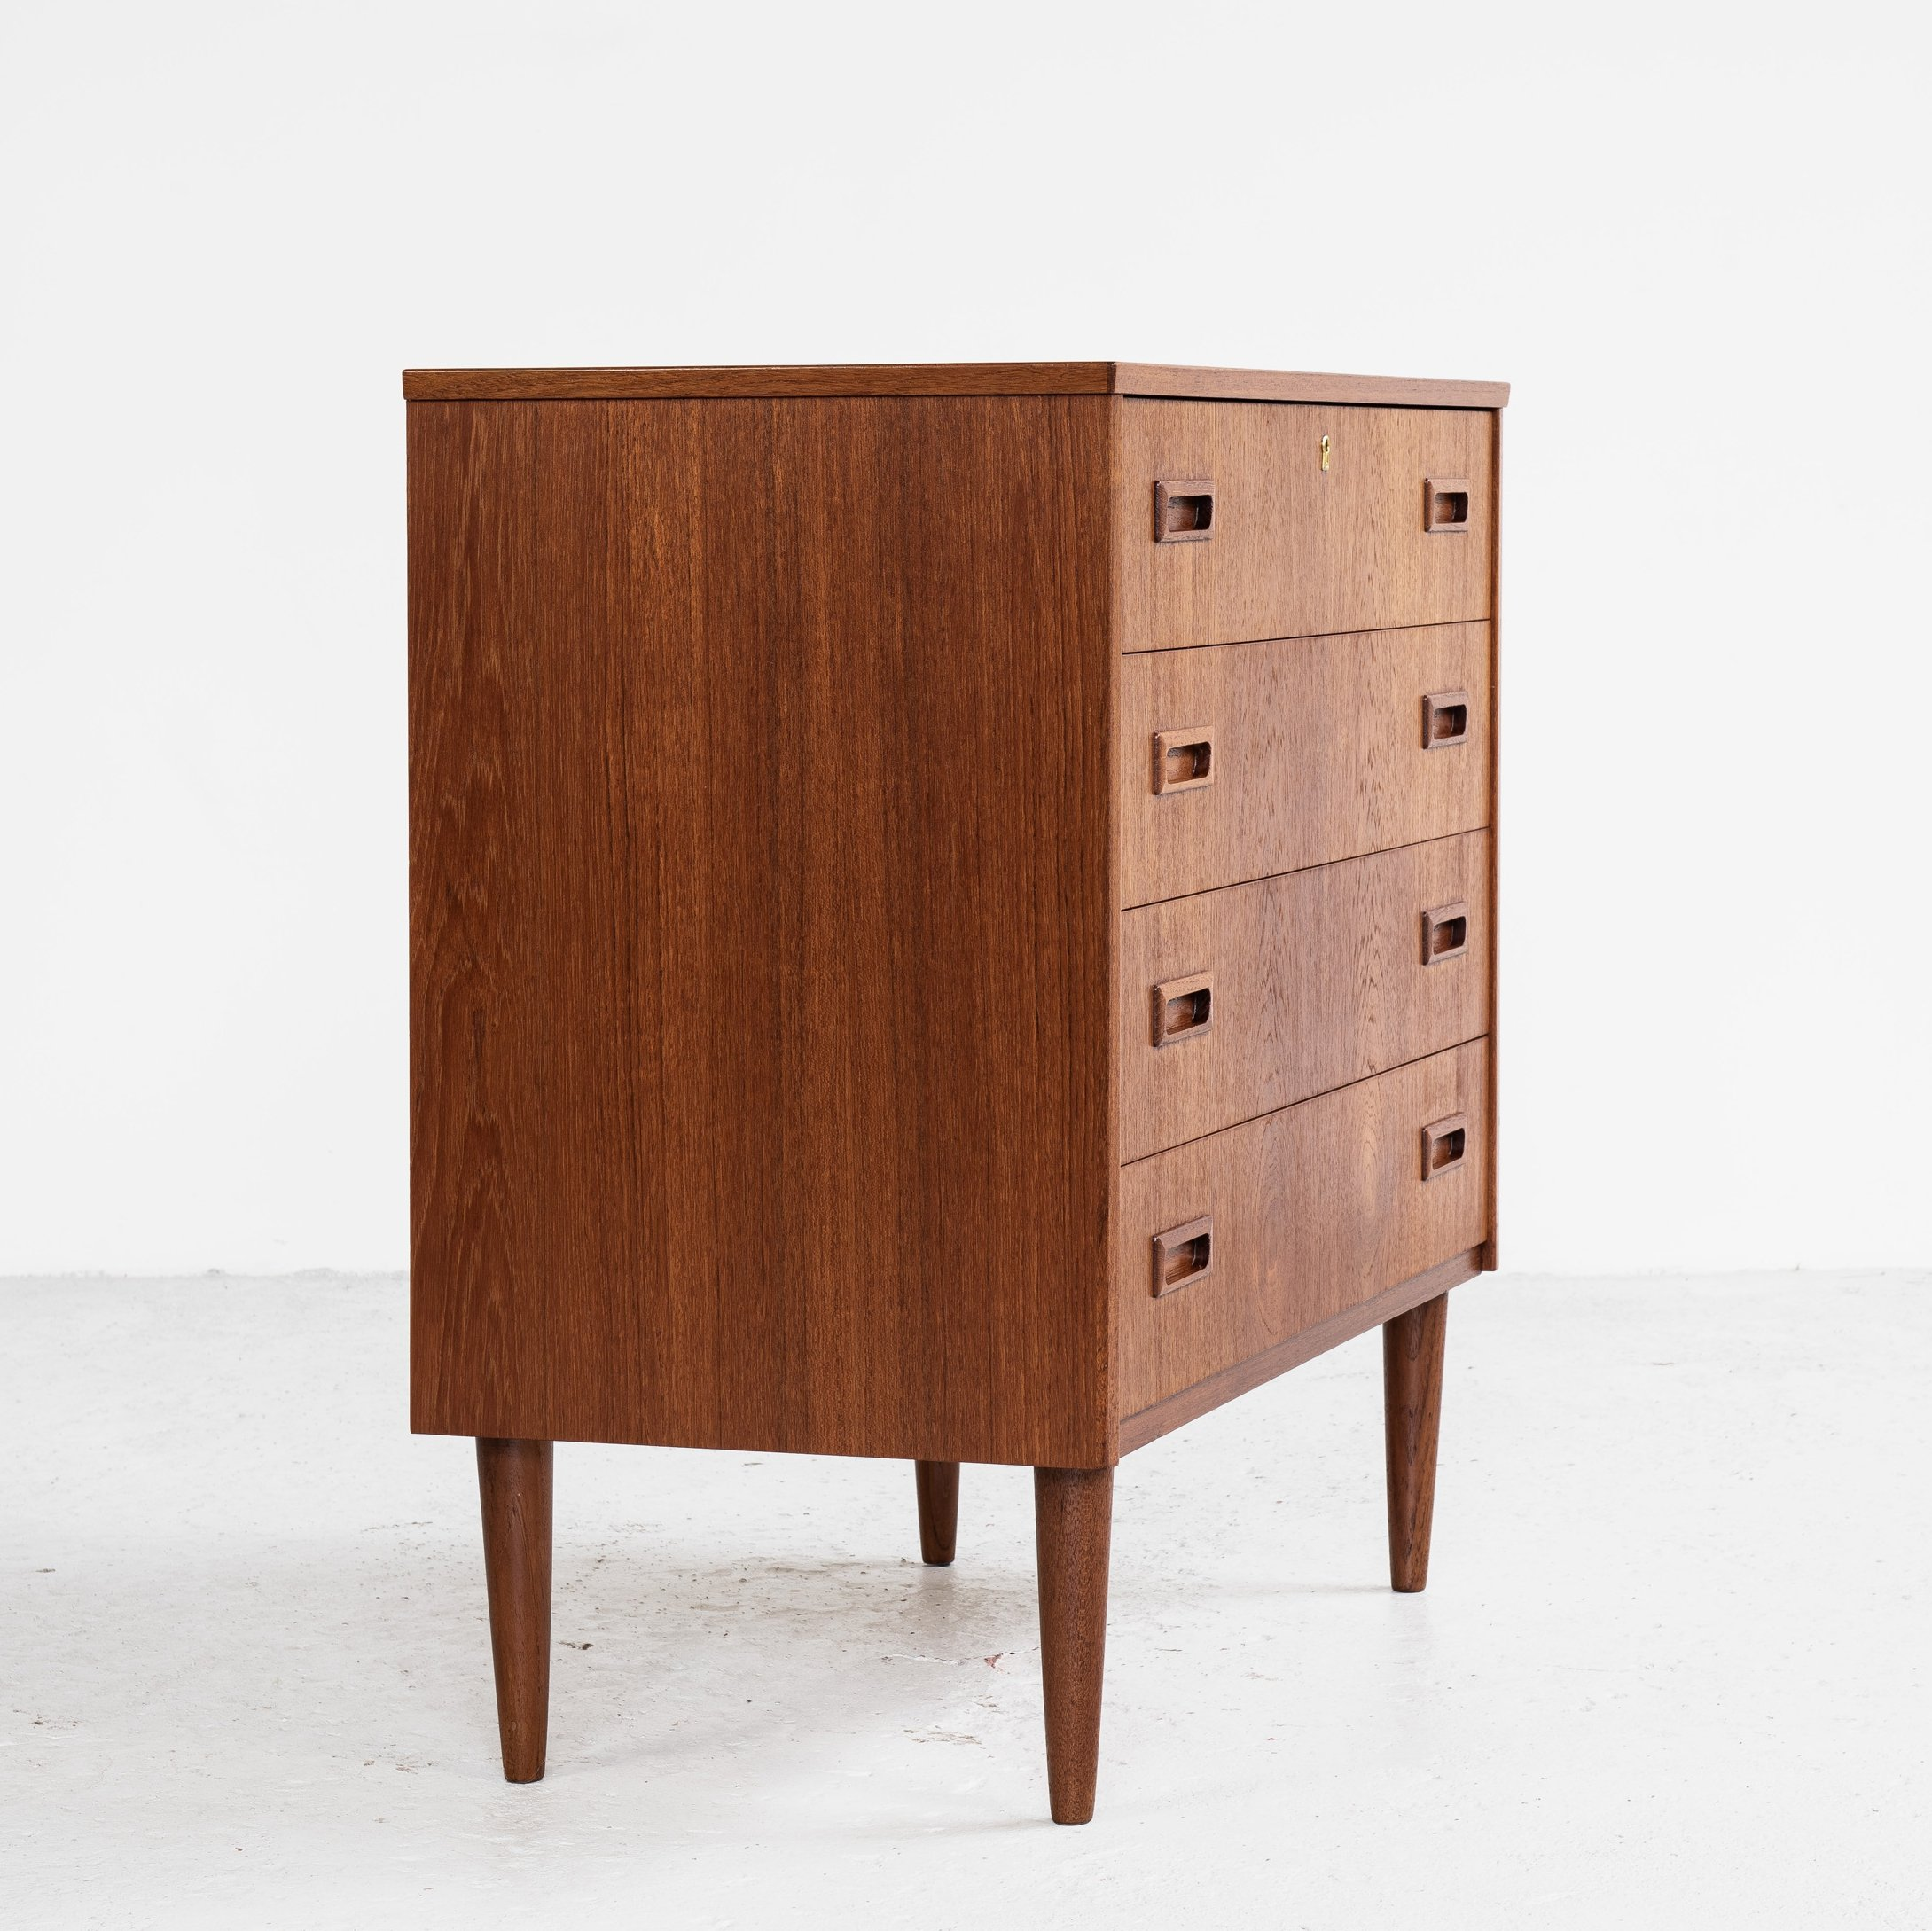 Image of: Midcentury Danish Chest Of 4 Drawers In Teak With 2 Drawer Handles 1960s 137933